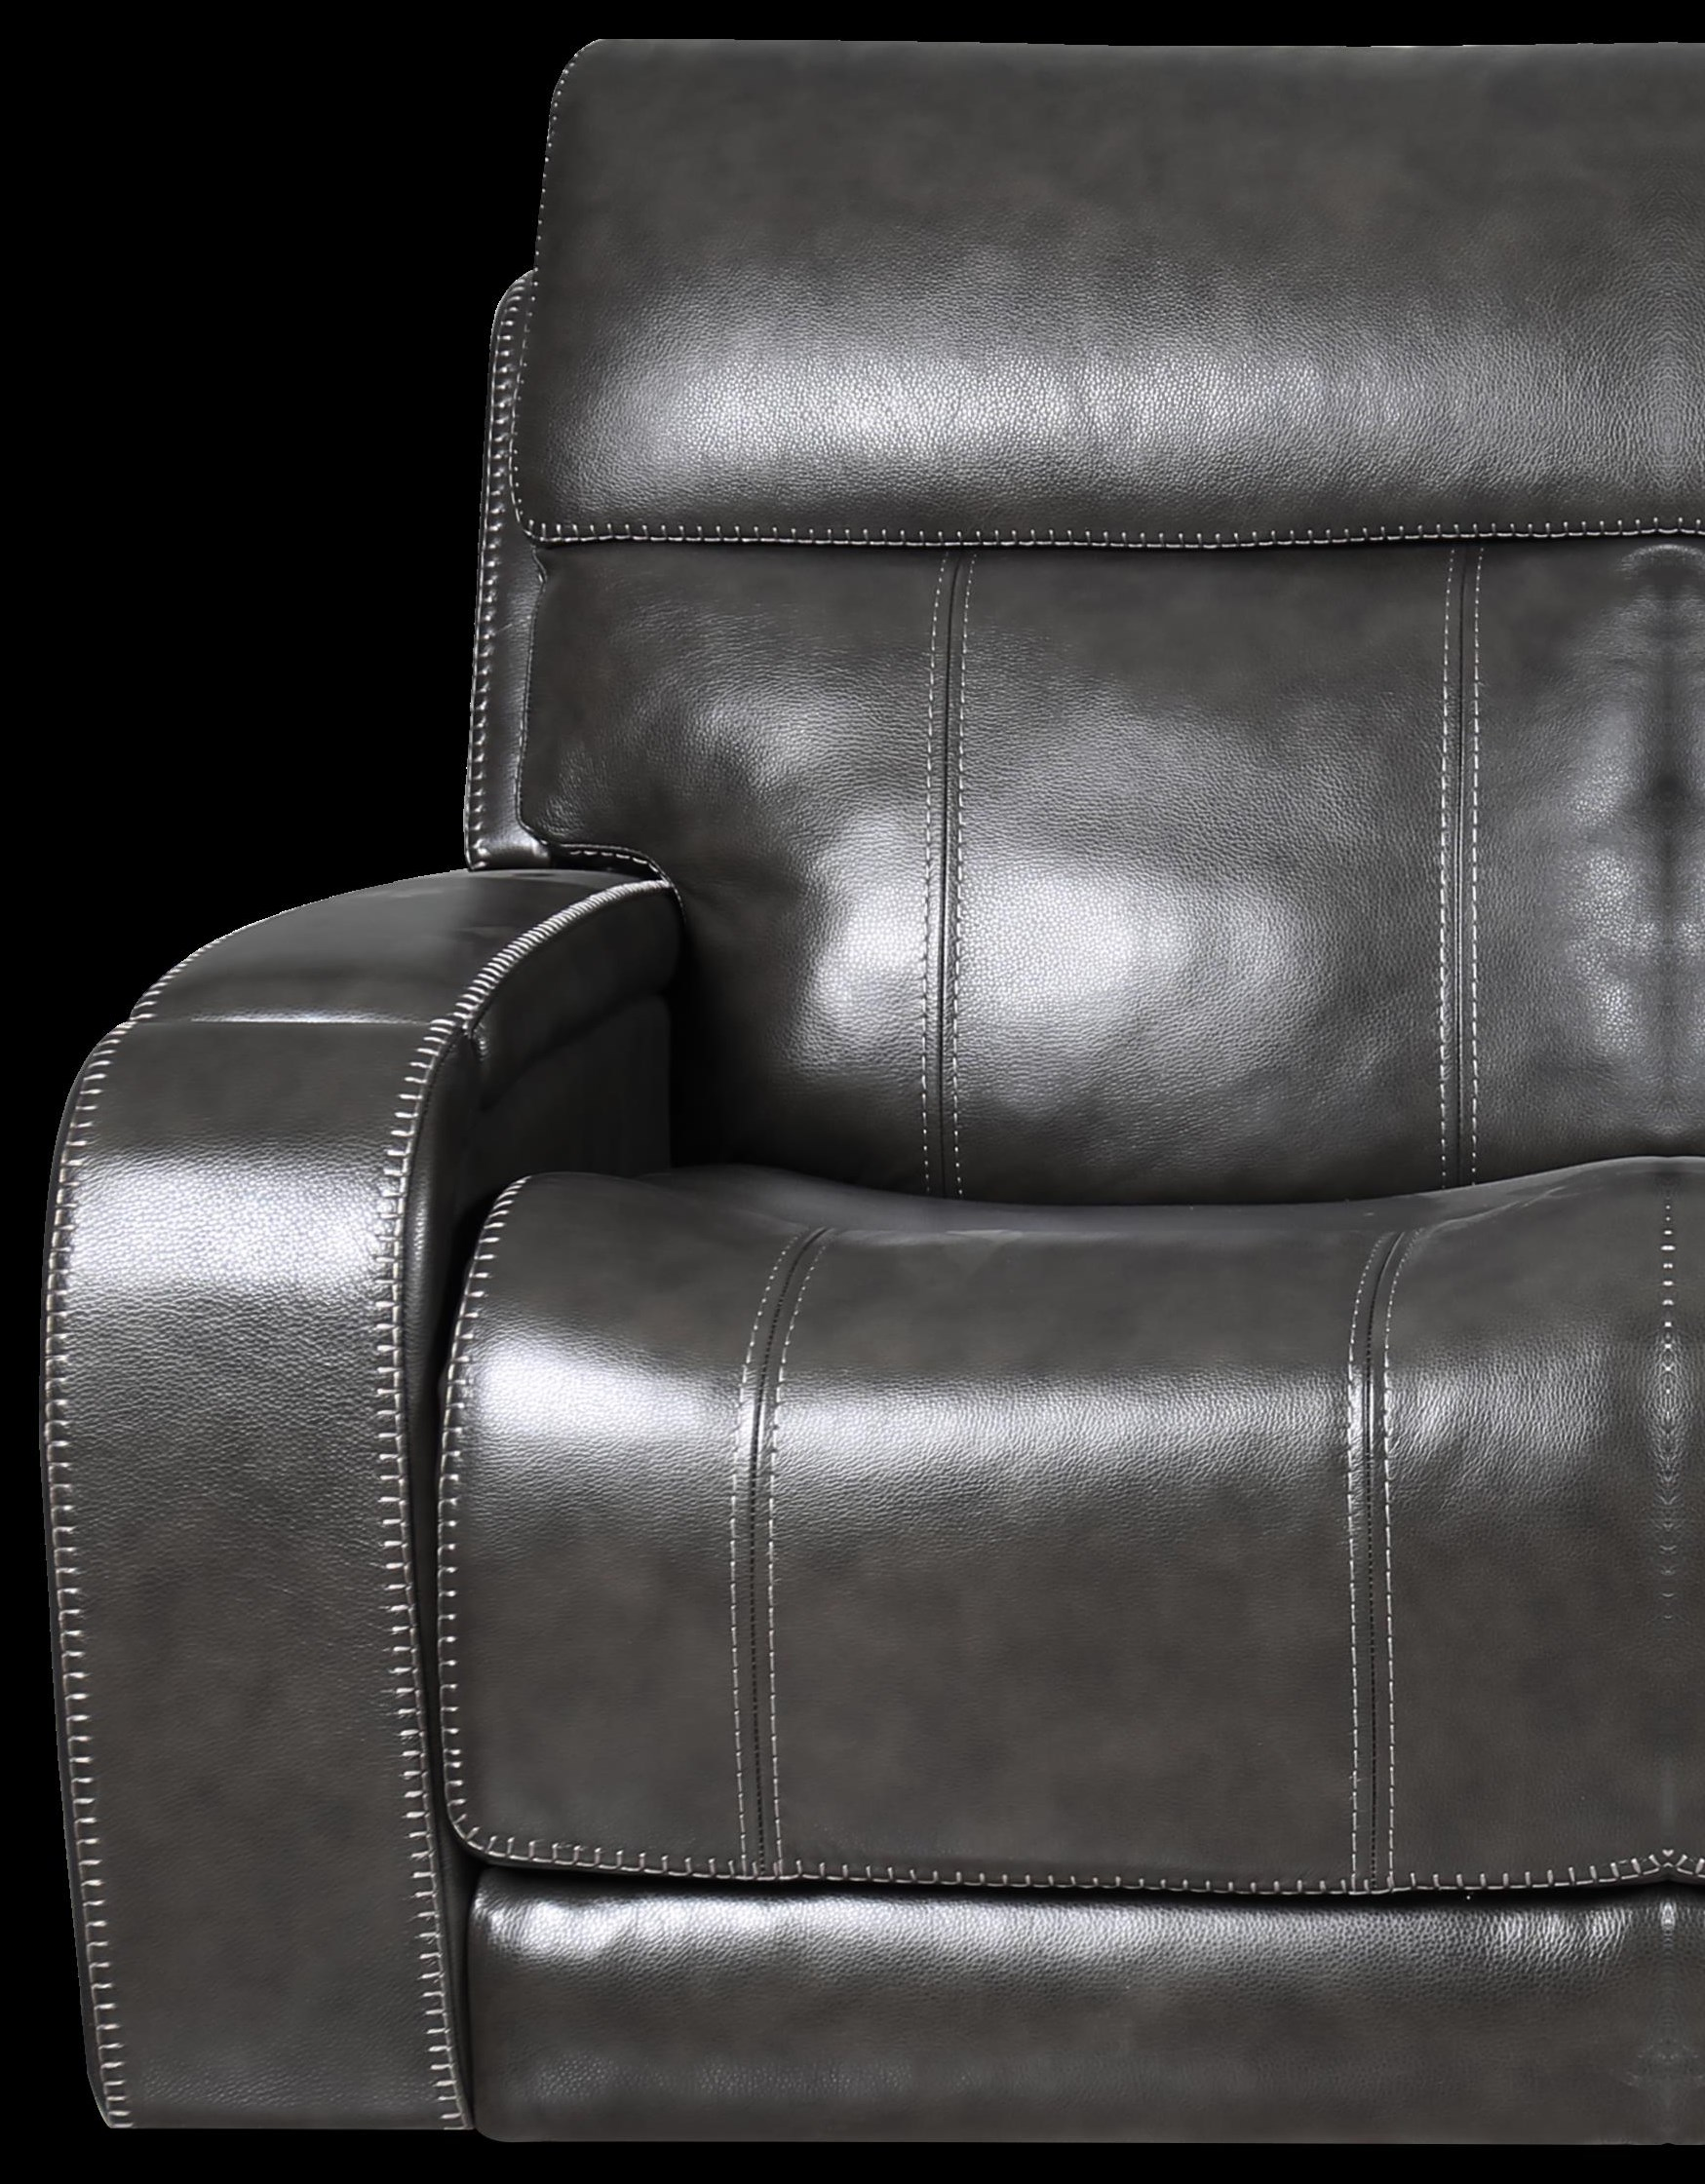 462 Leather Sectional Triple Power Leather Recliner by Moto Motion at Furniture Fair - North Carolina